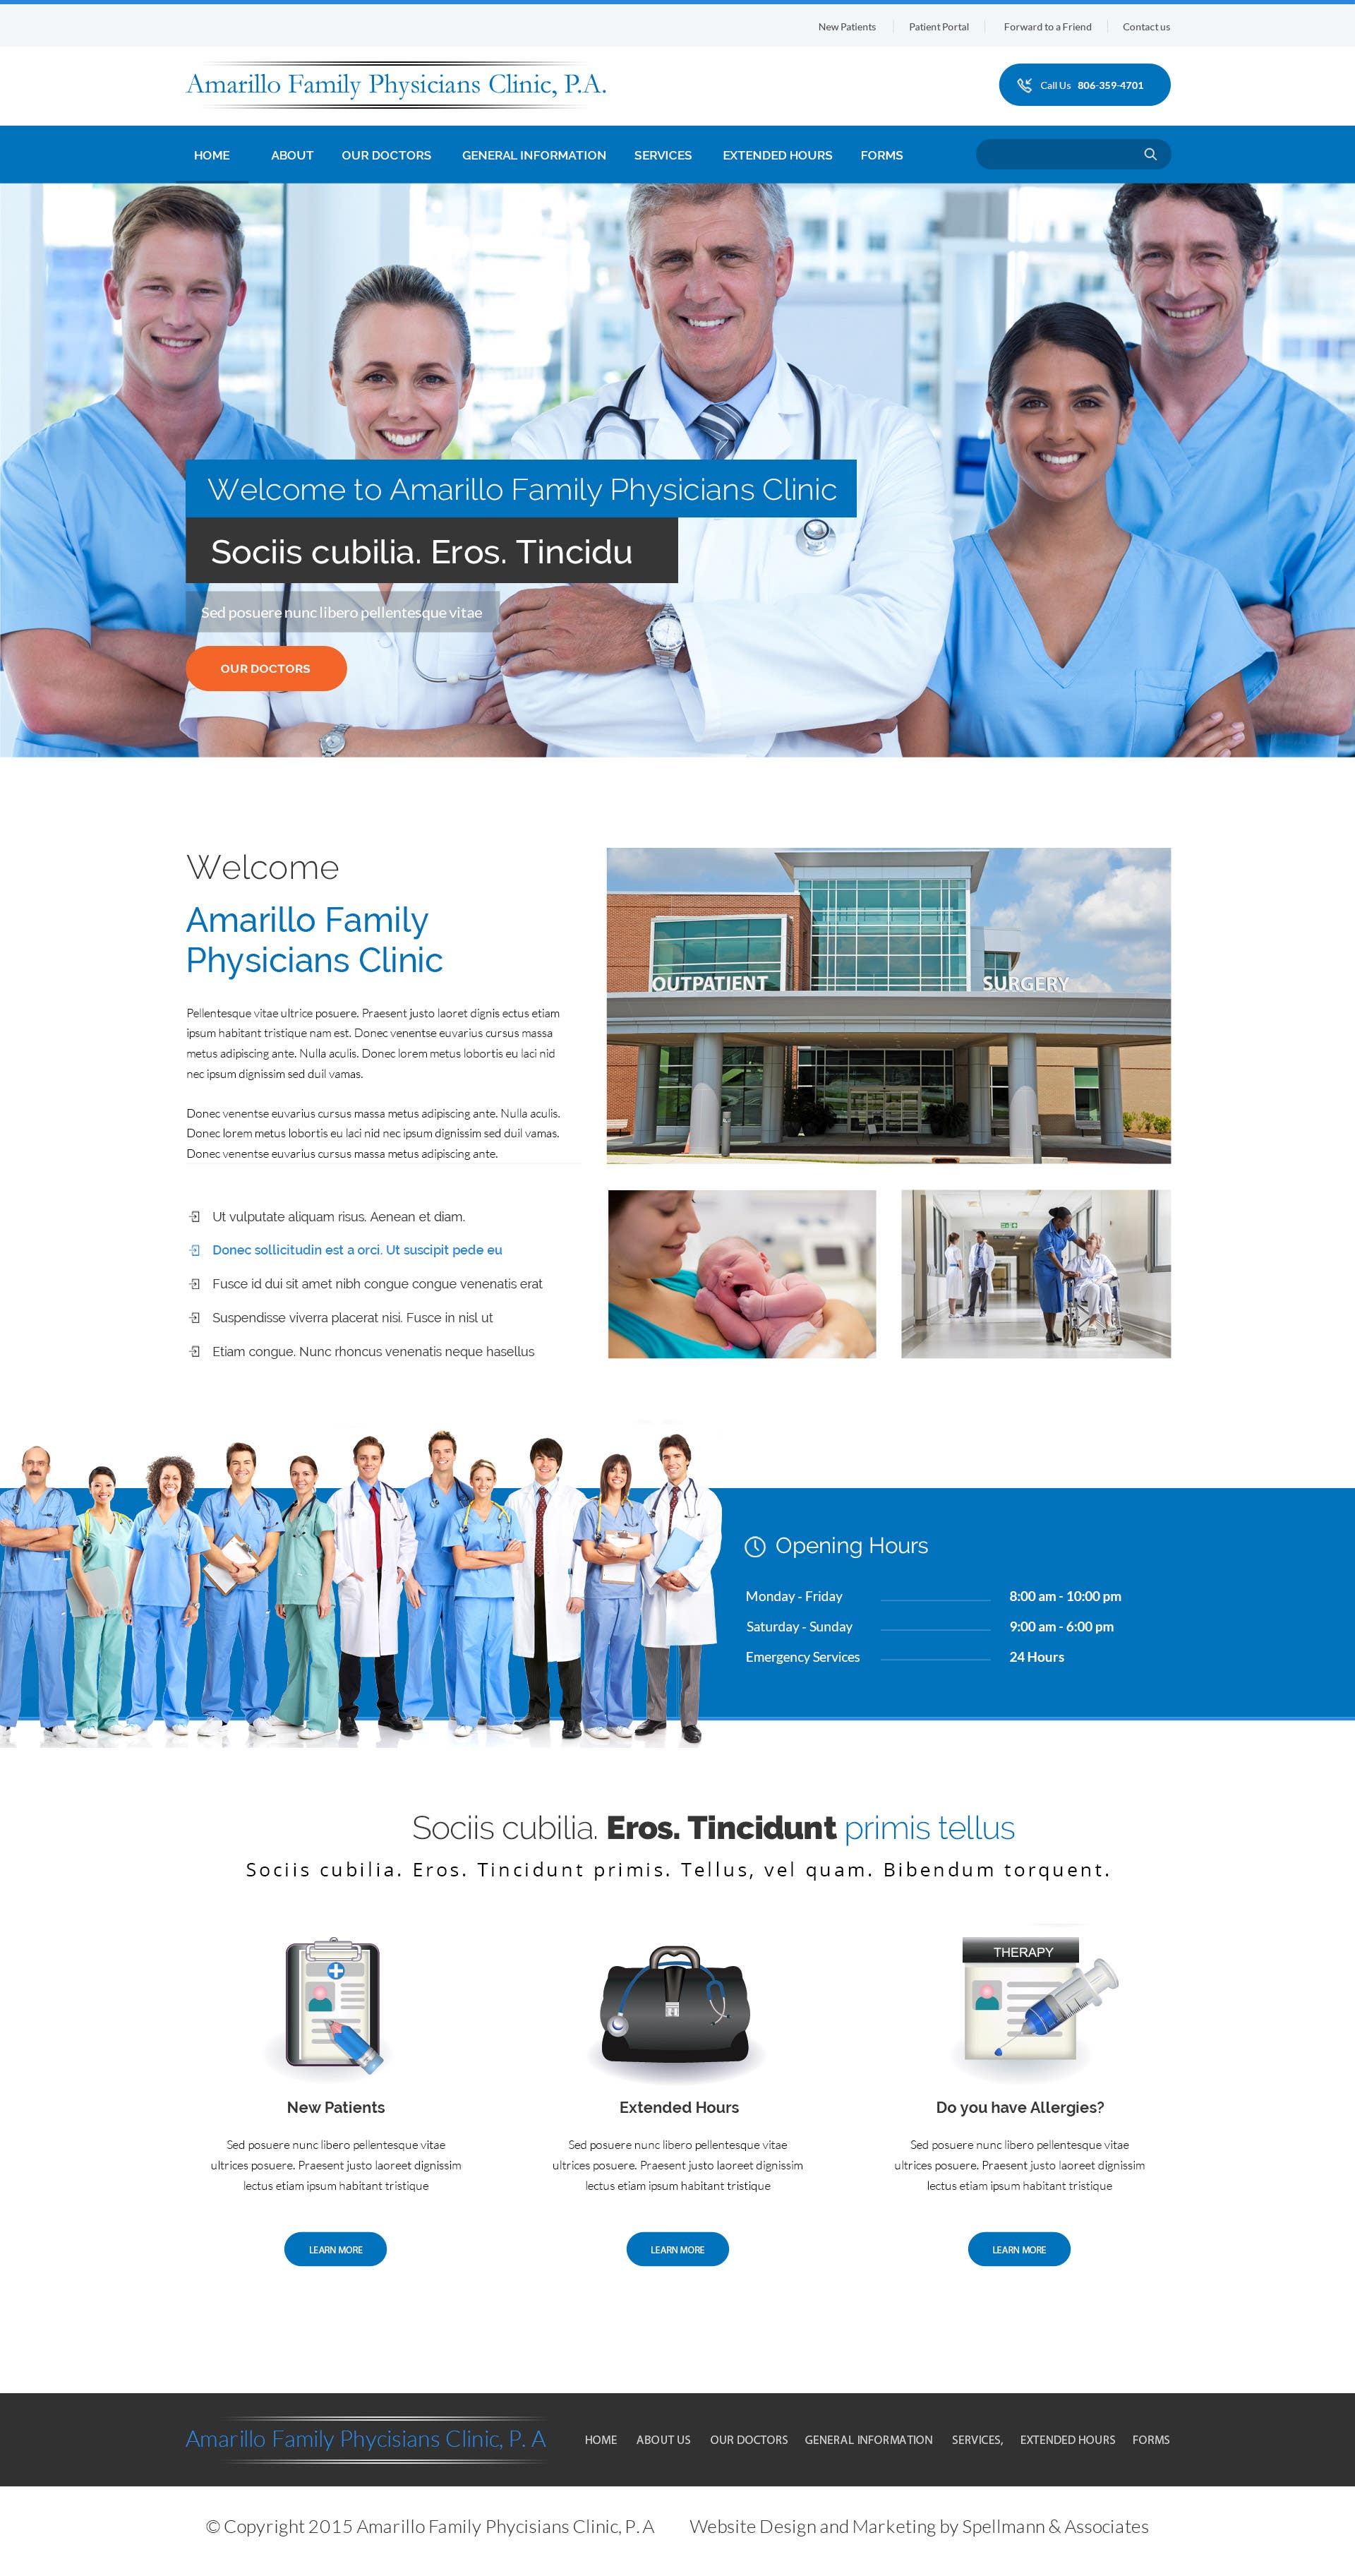 Amarillo Family Physicians